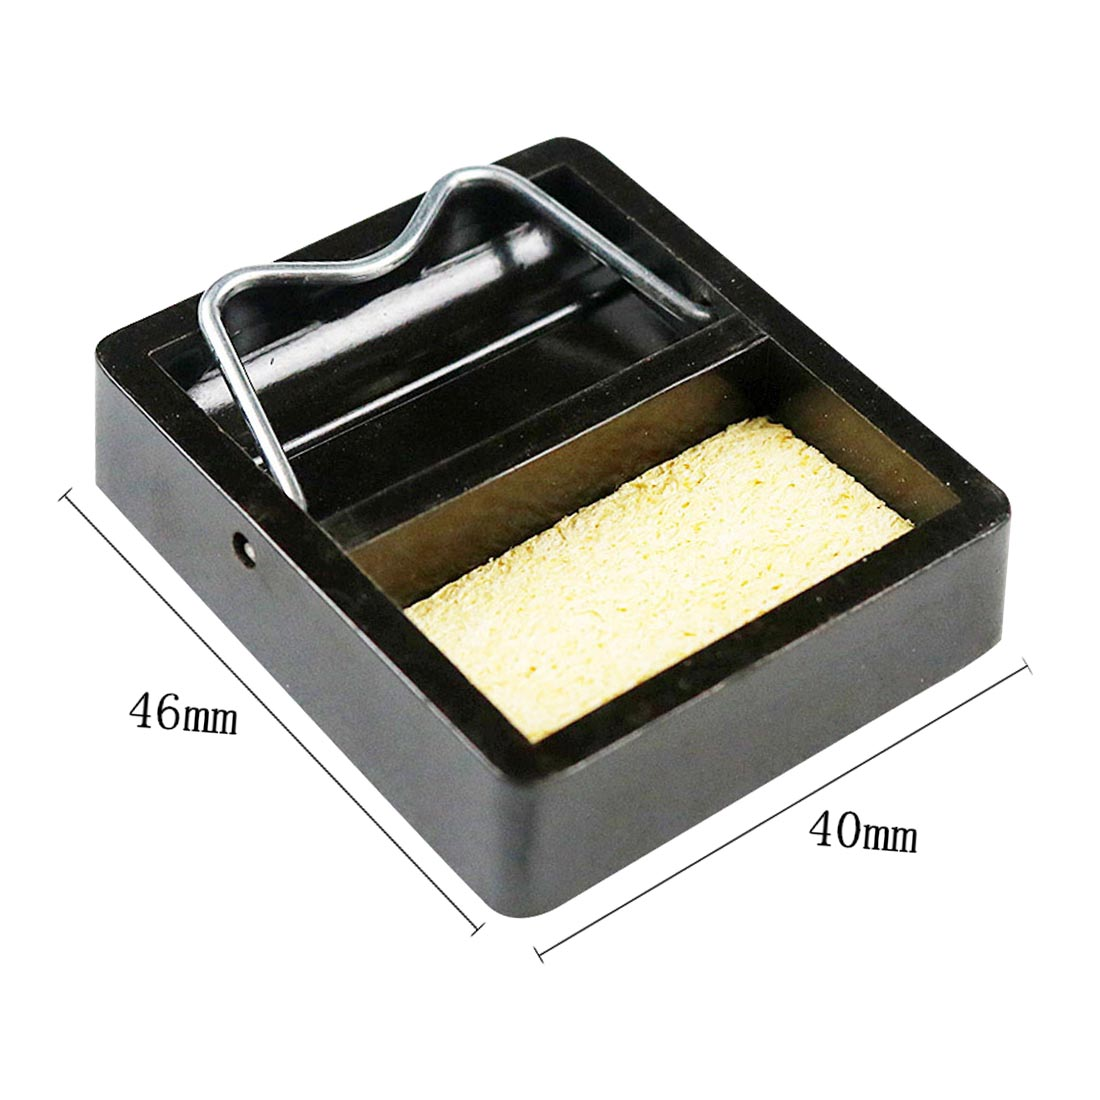 DIY Electric Soldering Iron Stand Holder Metal Support Station With Solder Sponge Soldering Iron Frame Small And Simple